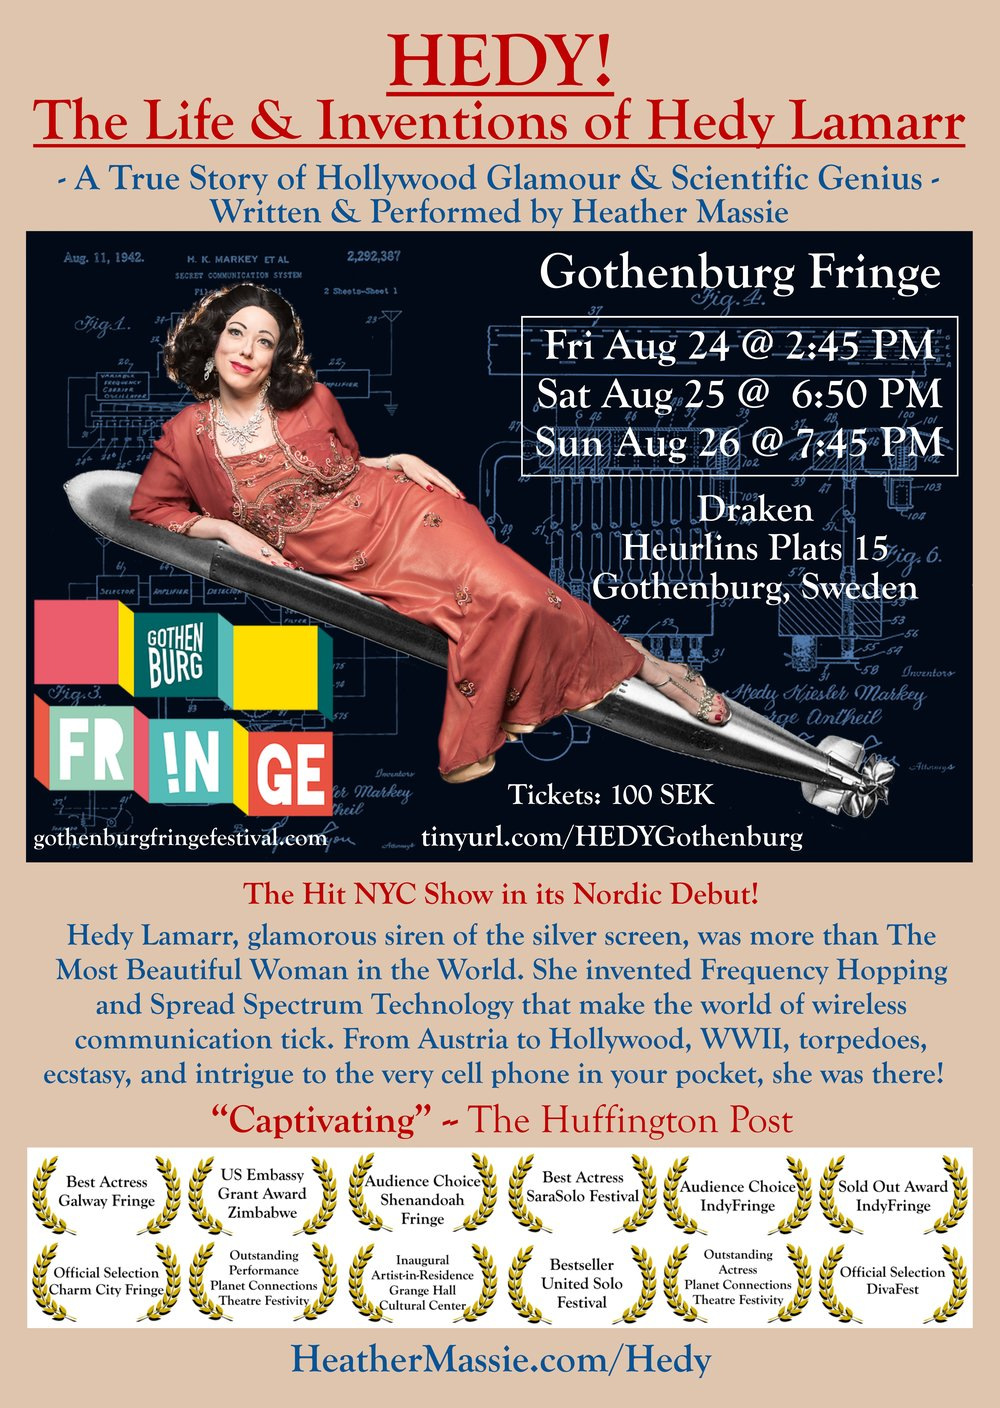 HEDY A2 poster 2018 Gothenburg Fringe - final - w 3mm bleed - full size.jpg